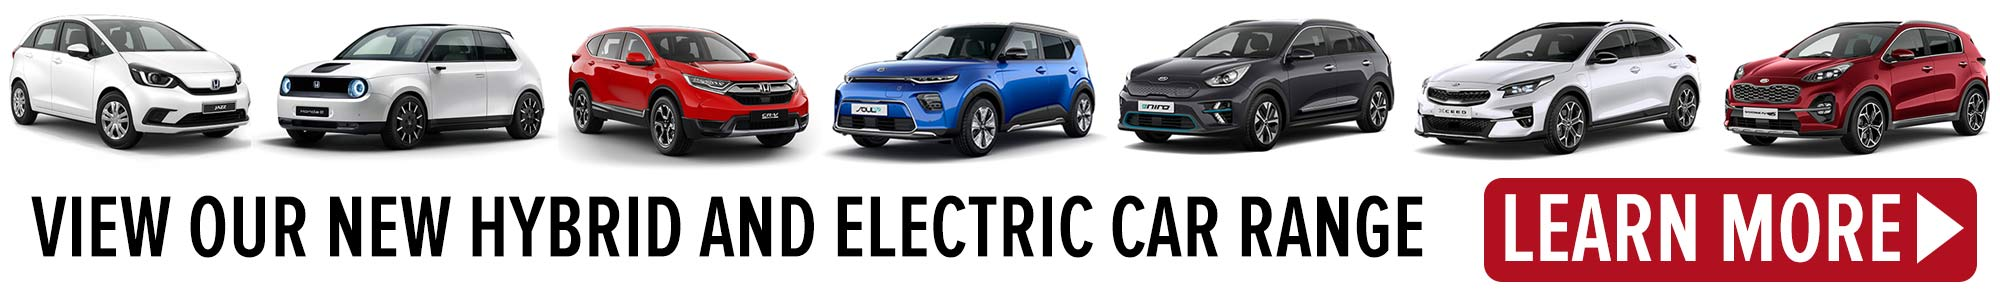 Hybrid and Electric Cars in Paignton and Newton Abbot